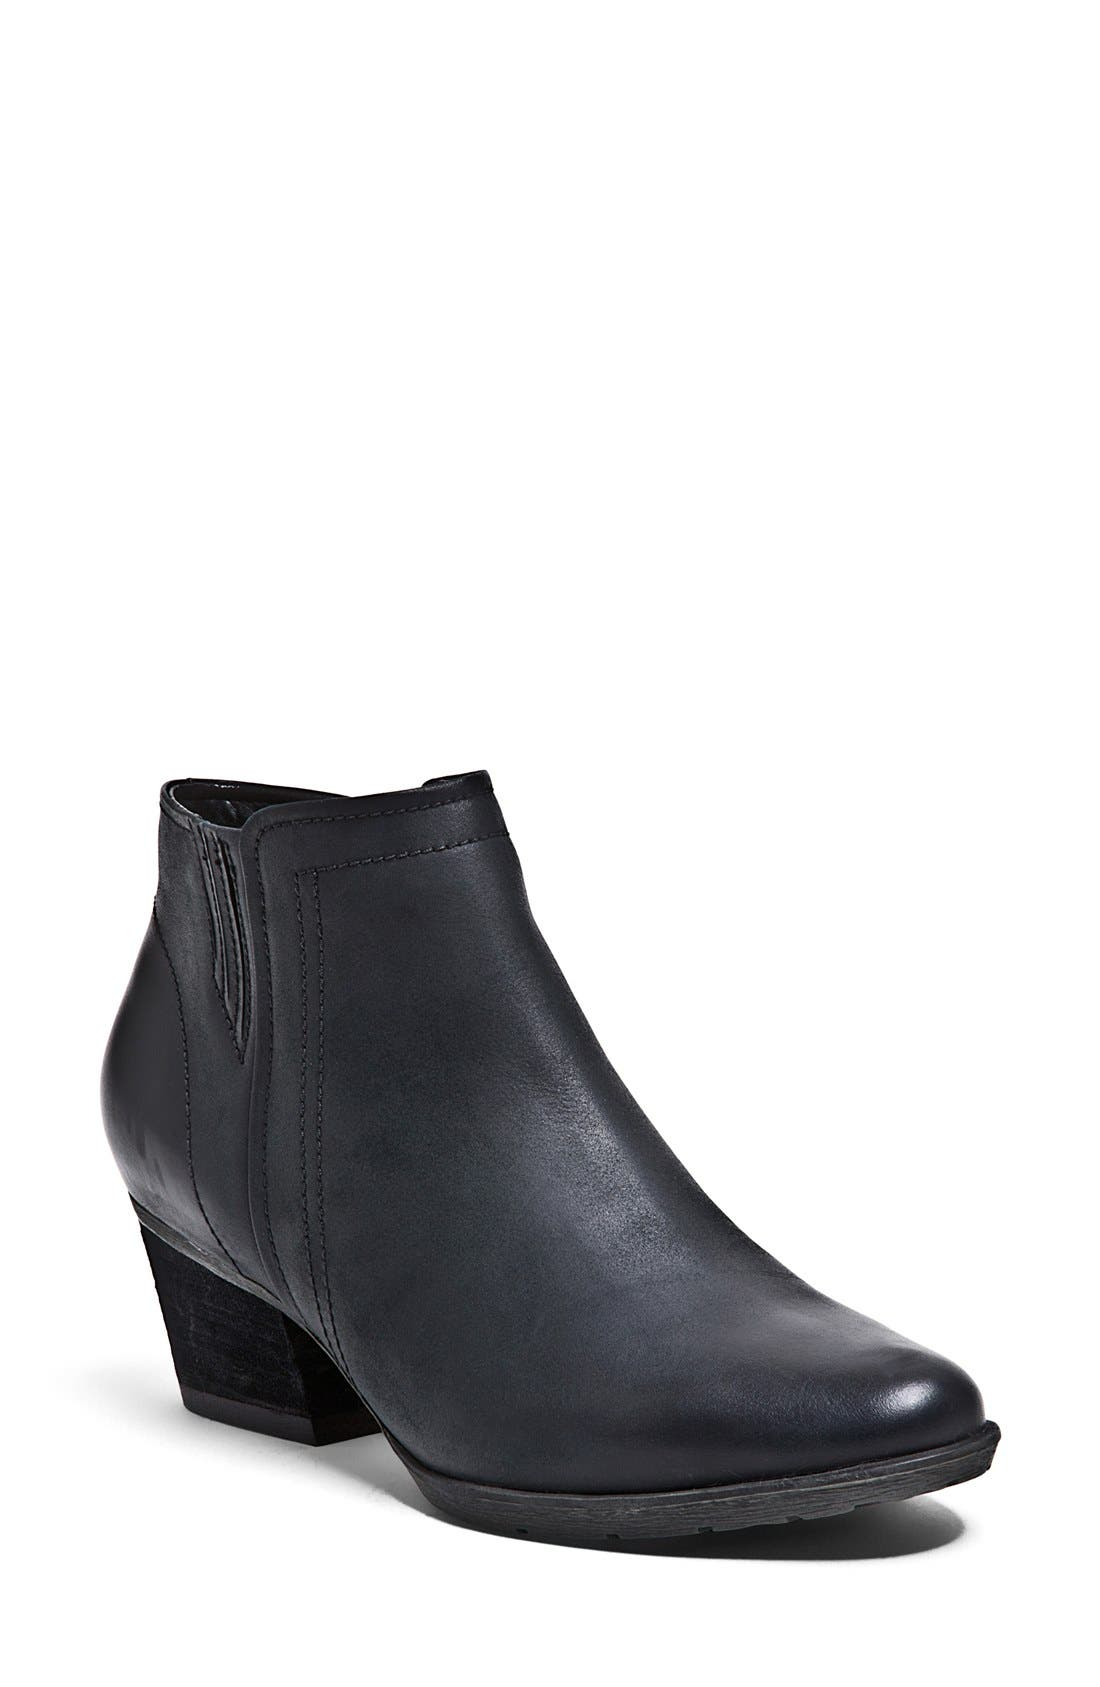 Alternate Image 1 Selected - Blondo 'Valli' Waterproof  Bootie (Women)